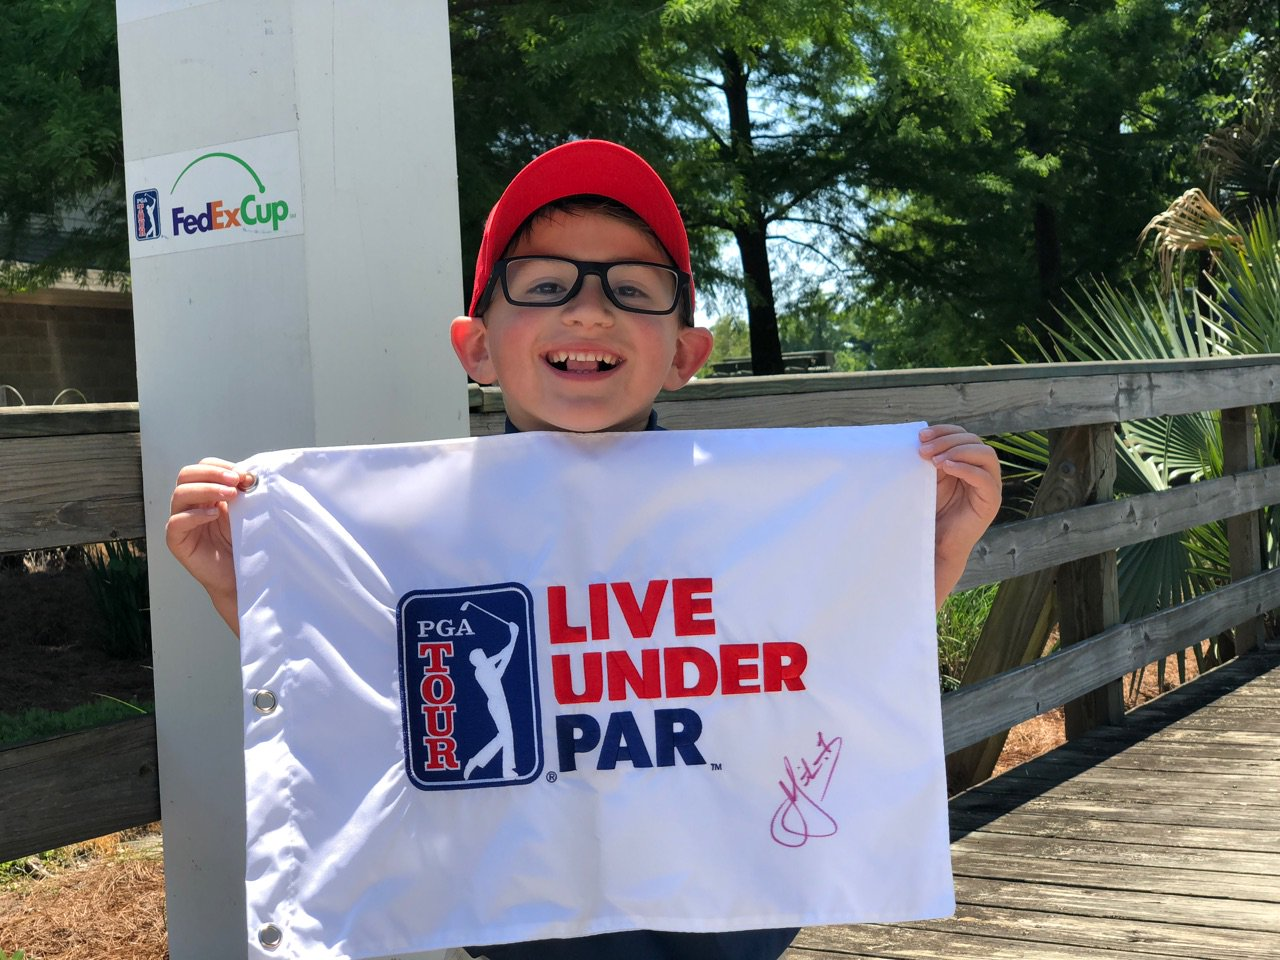 This is Micah. Micah made some friends today.  #LiveUnderPar https://t.co/YjVtNK8gAA